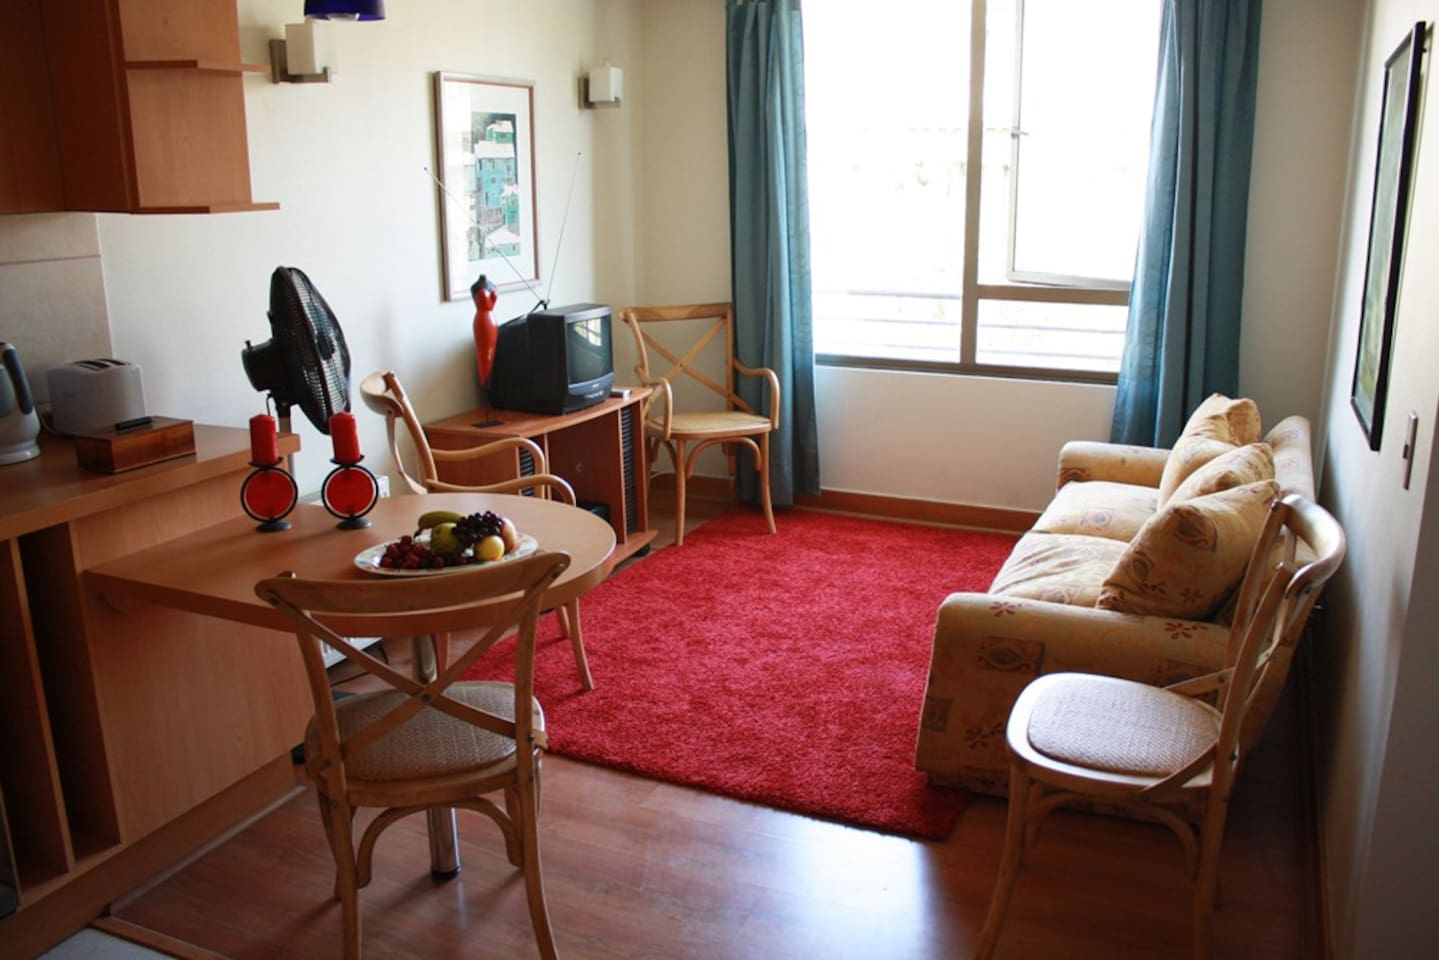 2 Bedrooms apartment in Down Town